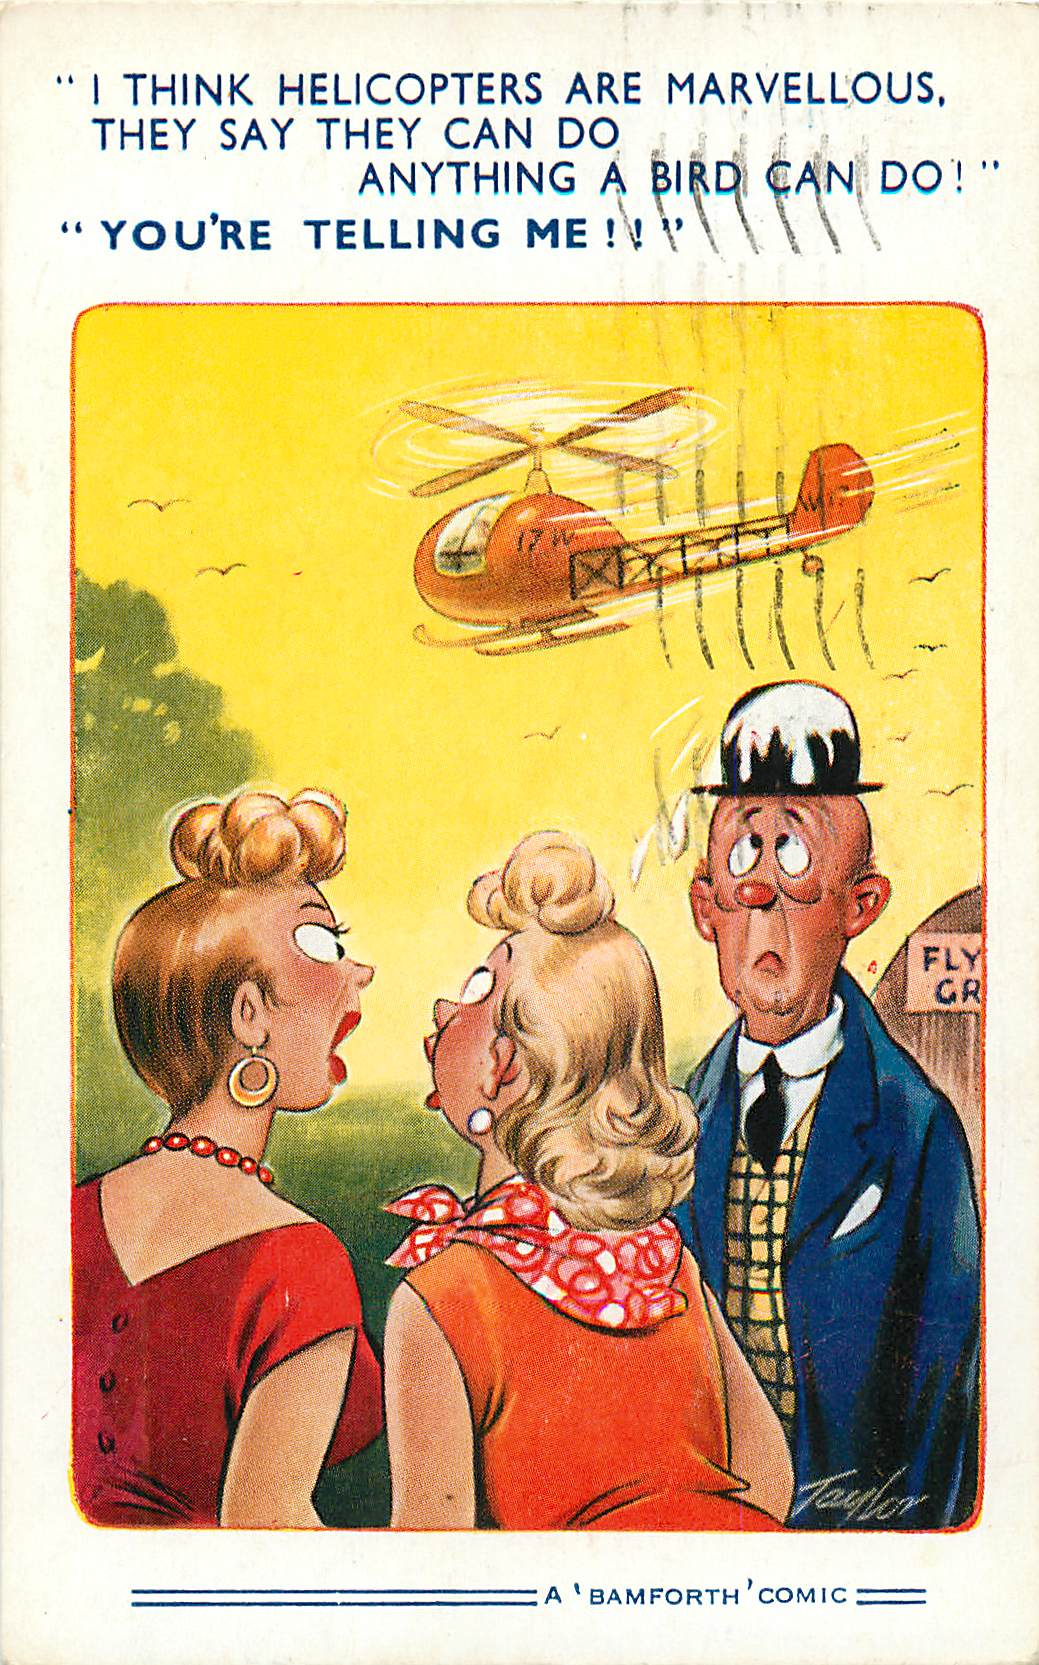 """I Think Helicopters are Marvellous"" Bamforth Comic"